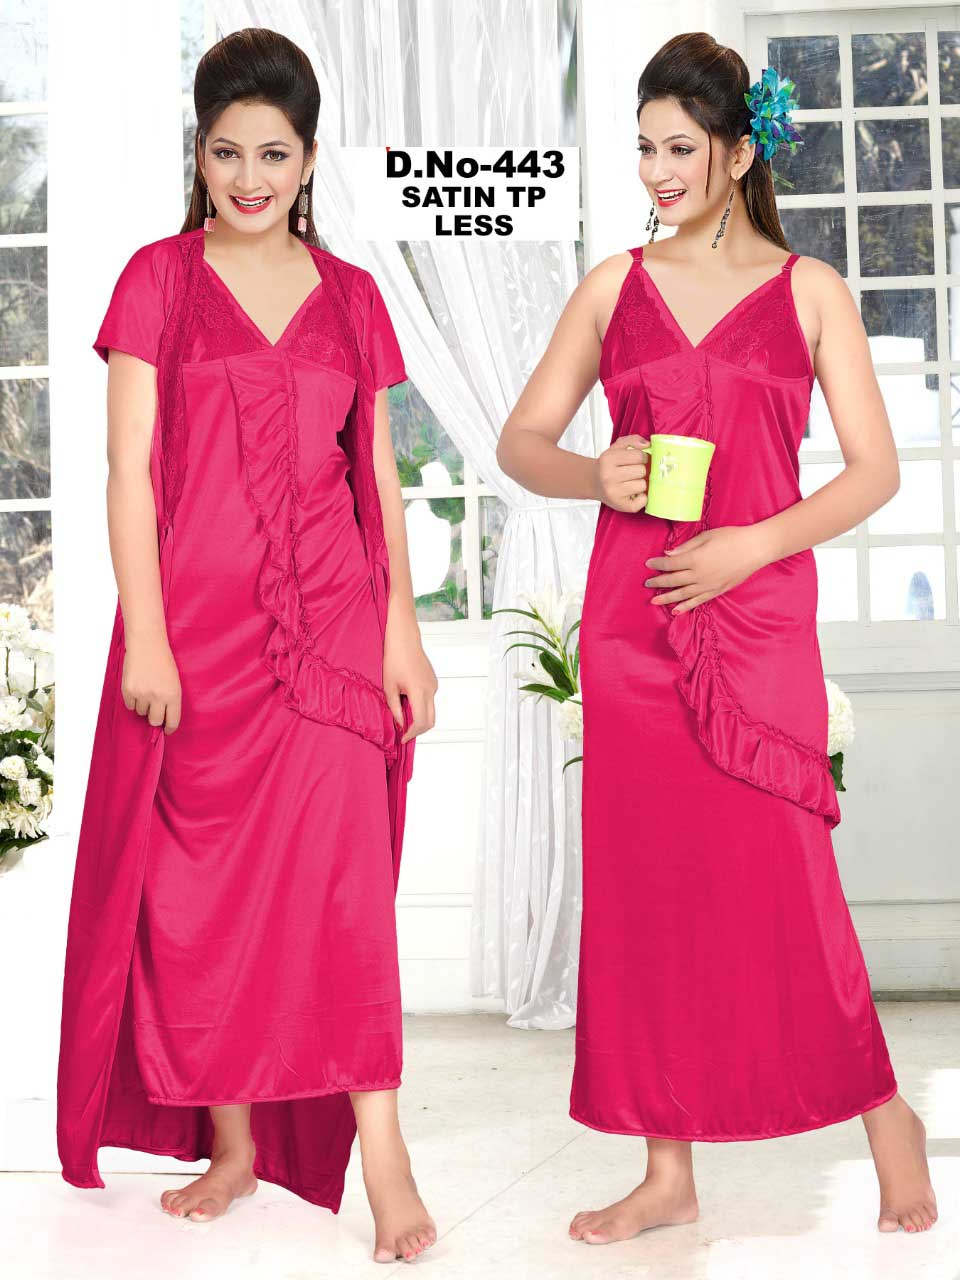 SATIN TWO PIECE NIGHTY-PINK-KC MAY 443